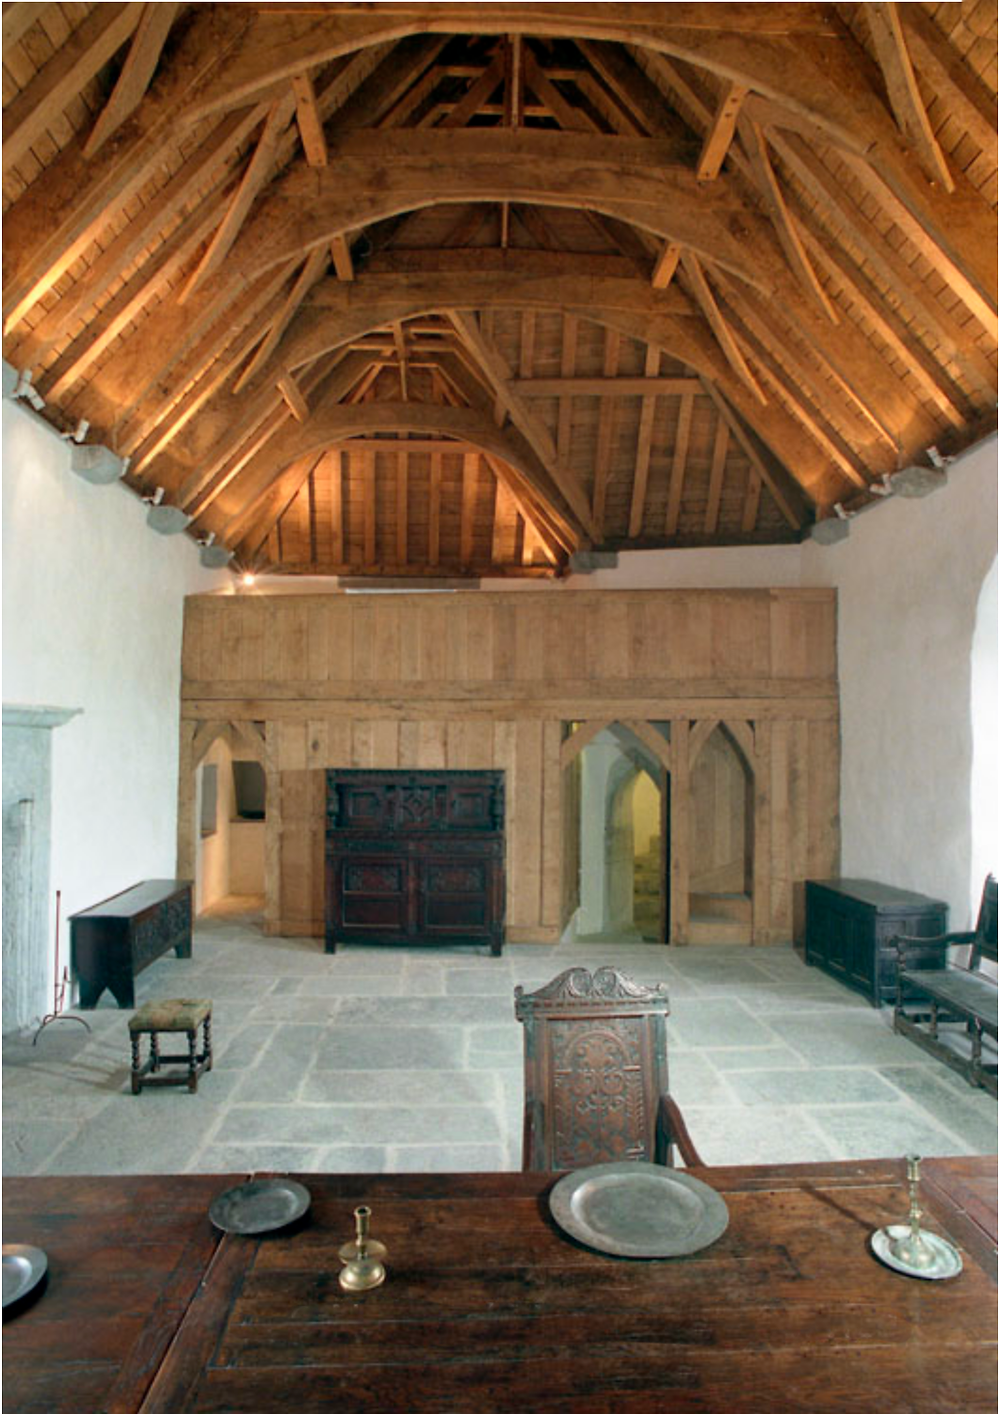 The hall at Ross castle.